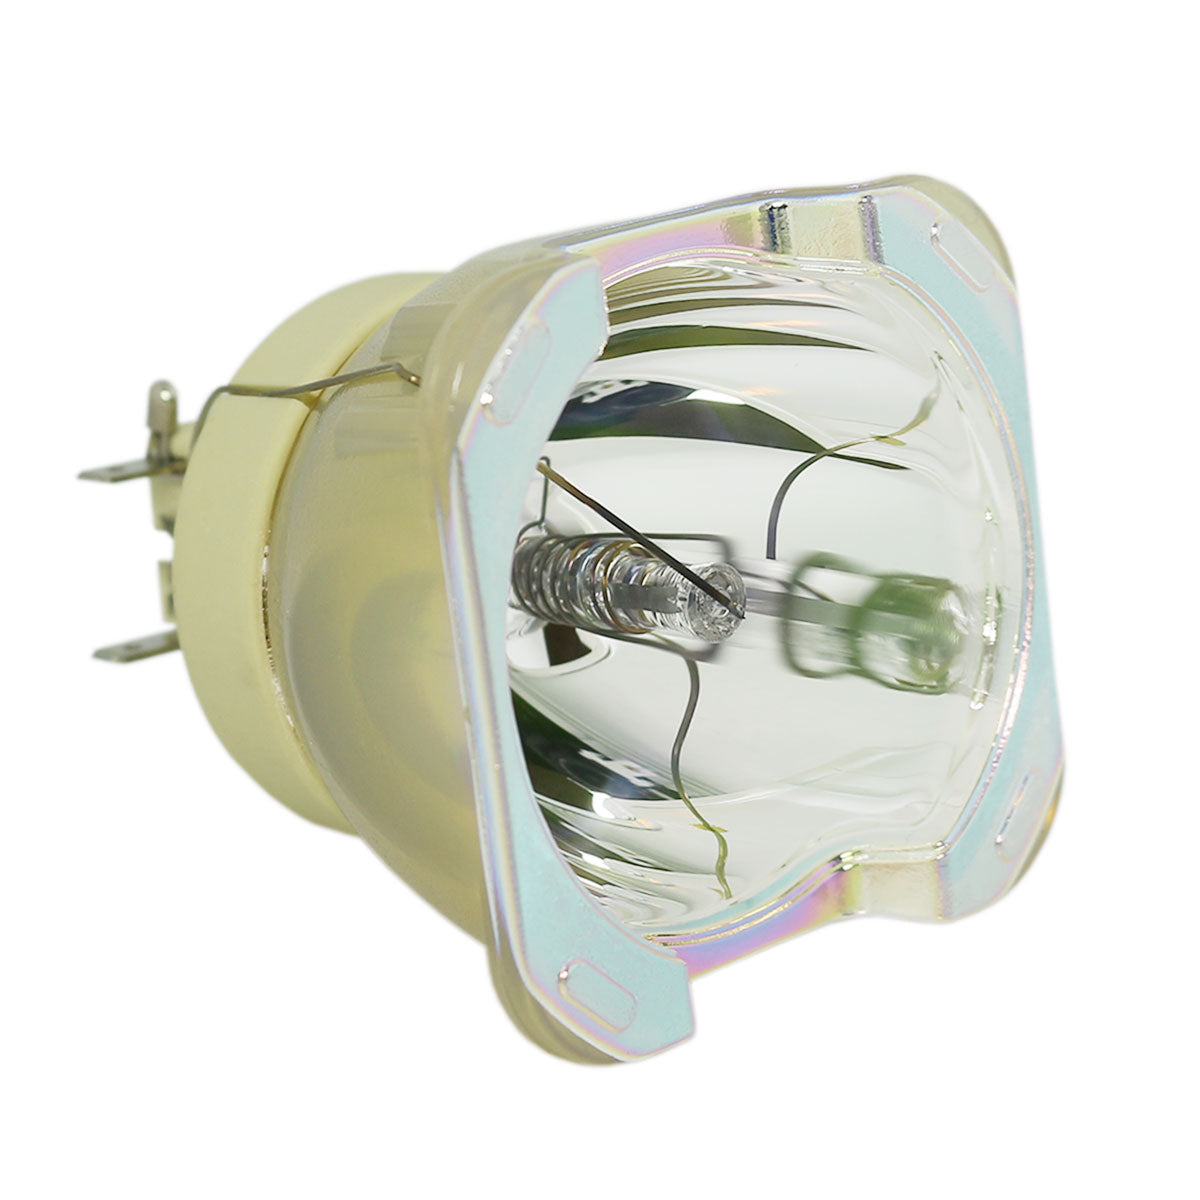 RICOH 512965 Philips Projector Bare Lamp